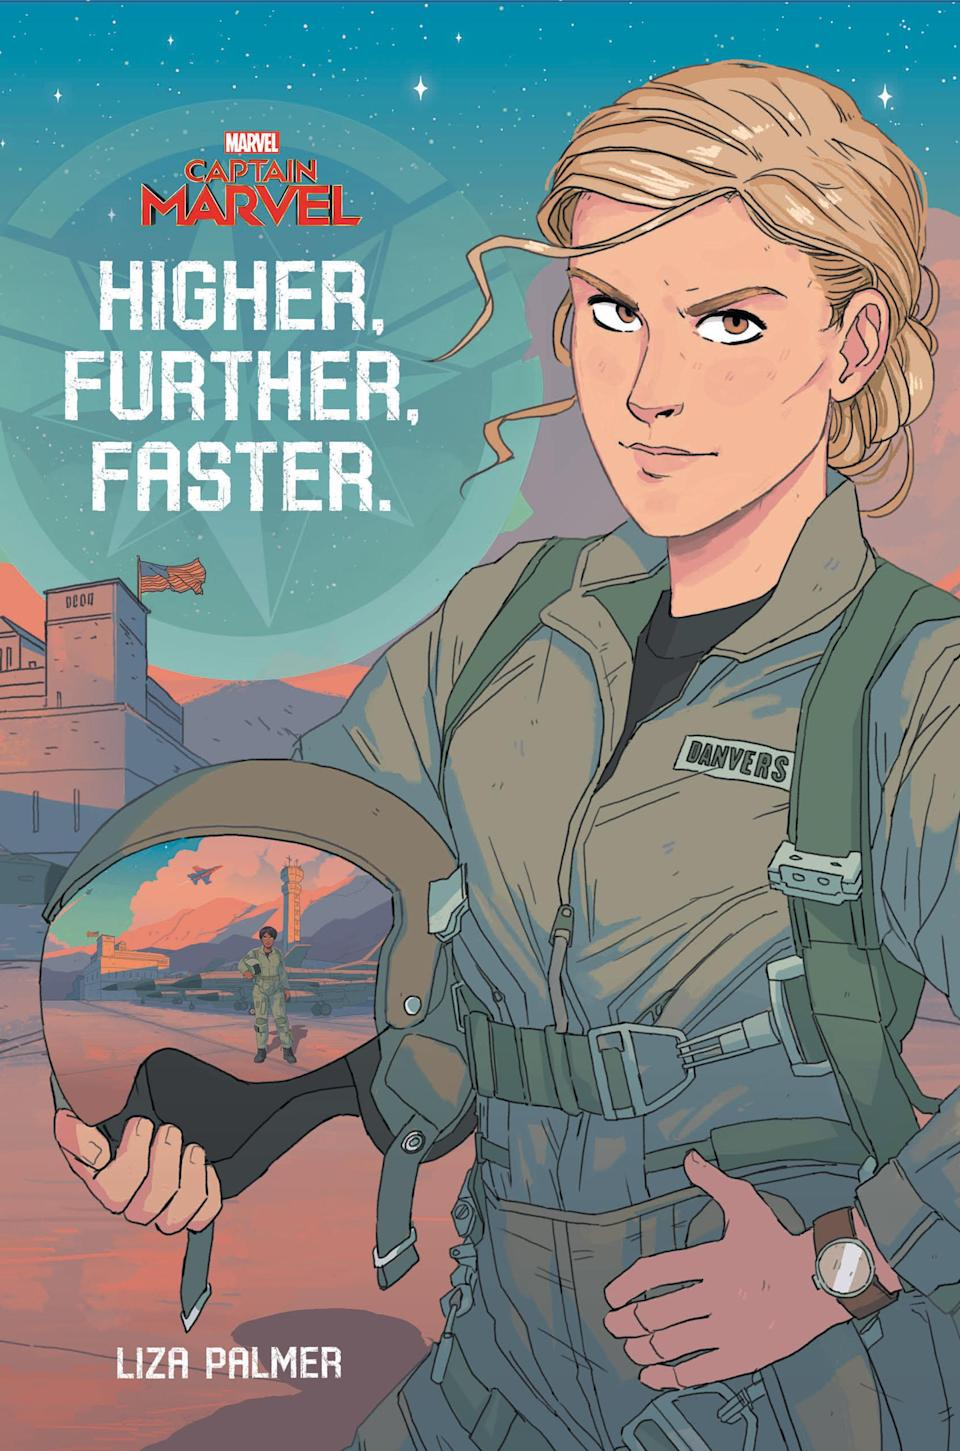 """<span>Focusing on Carol Danvers and Maria Rambeau in their Air Force pilot days, overcoming the """"boys club"""" mentality of the era, <em>Higher, Further, Faster</em> ($17.99) introduces the feisty heroine before she gains her superpowers. </span>(Photo: Disney)"""